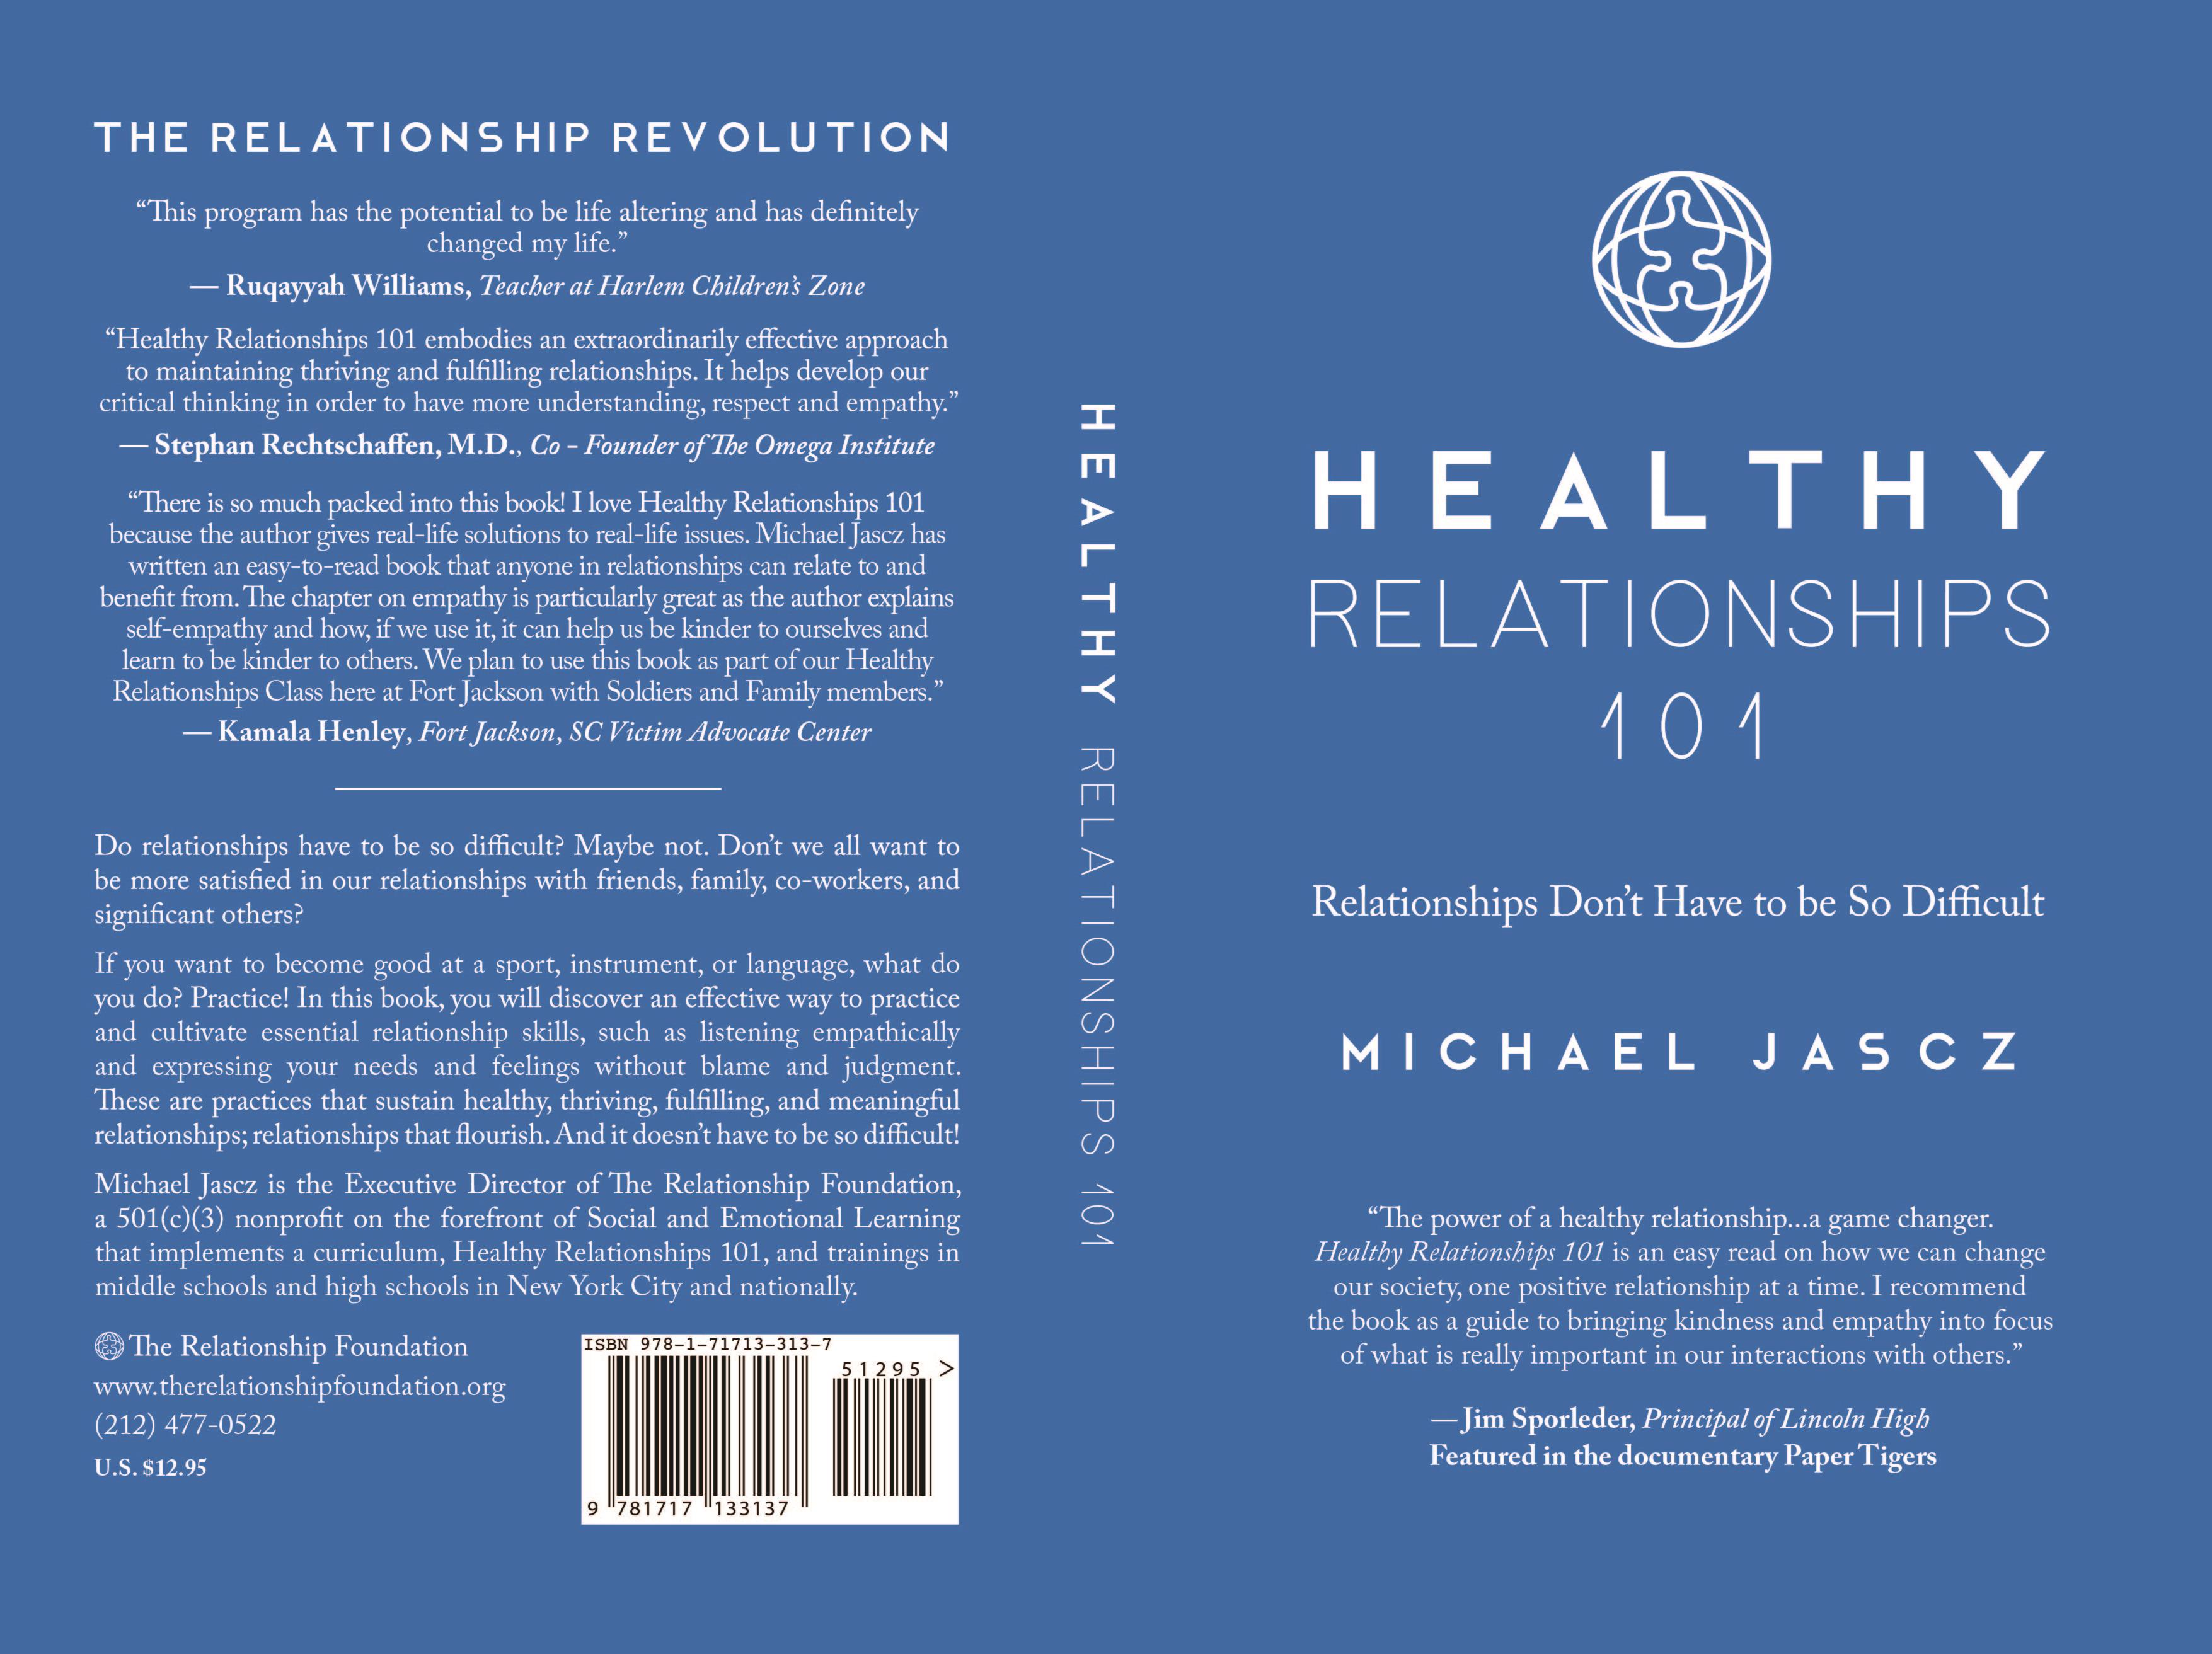 Healthy Relationships 101 Jim Sporleder cover image